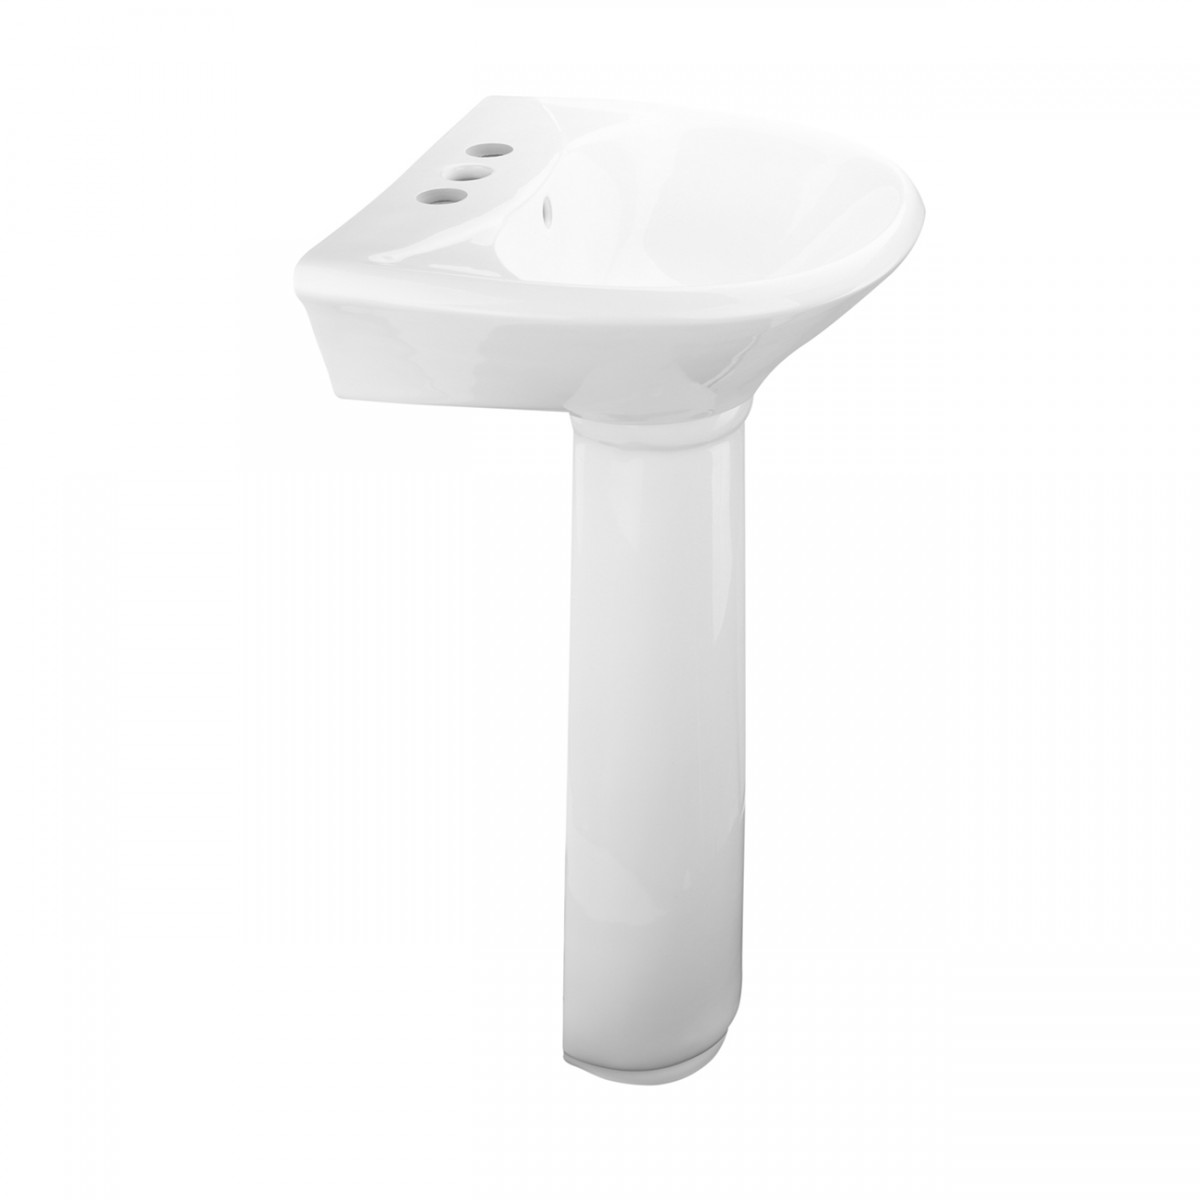 Renovators Supply Small Bathroom White Pedestal Sink 4 Centers with Overflow Cute Elegant Fancy Small Petite Narrow Space Saving Bathroom Pedestal Sink Centerset Faucet